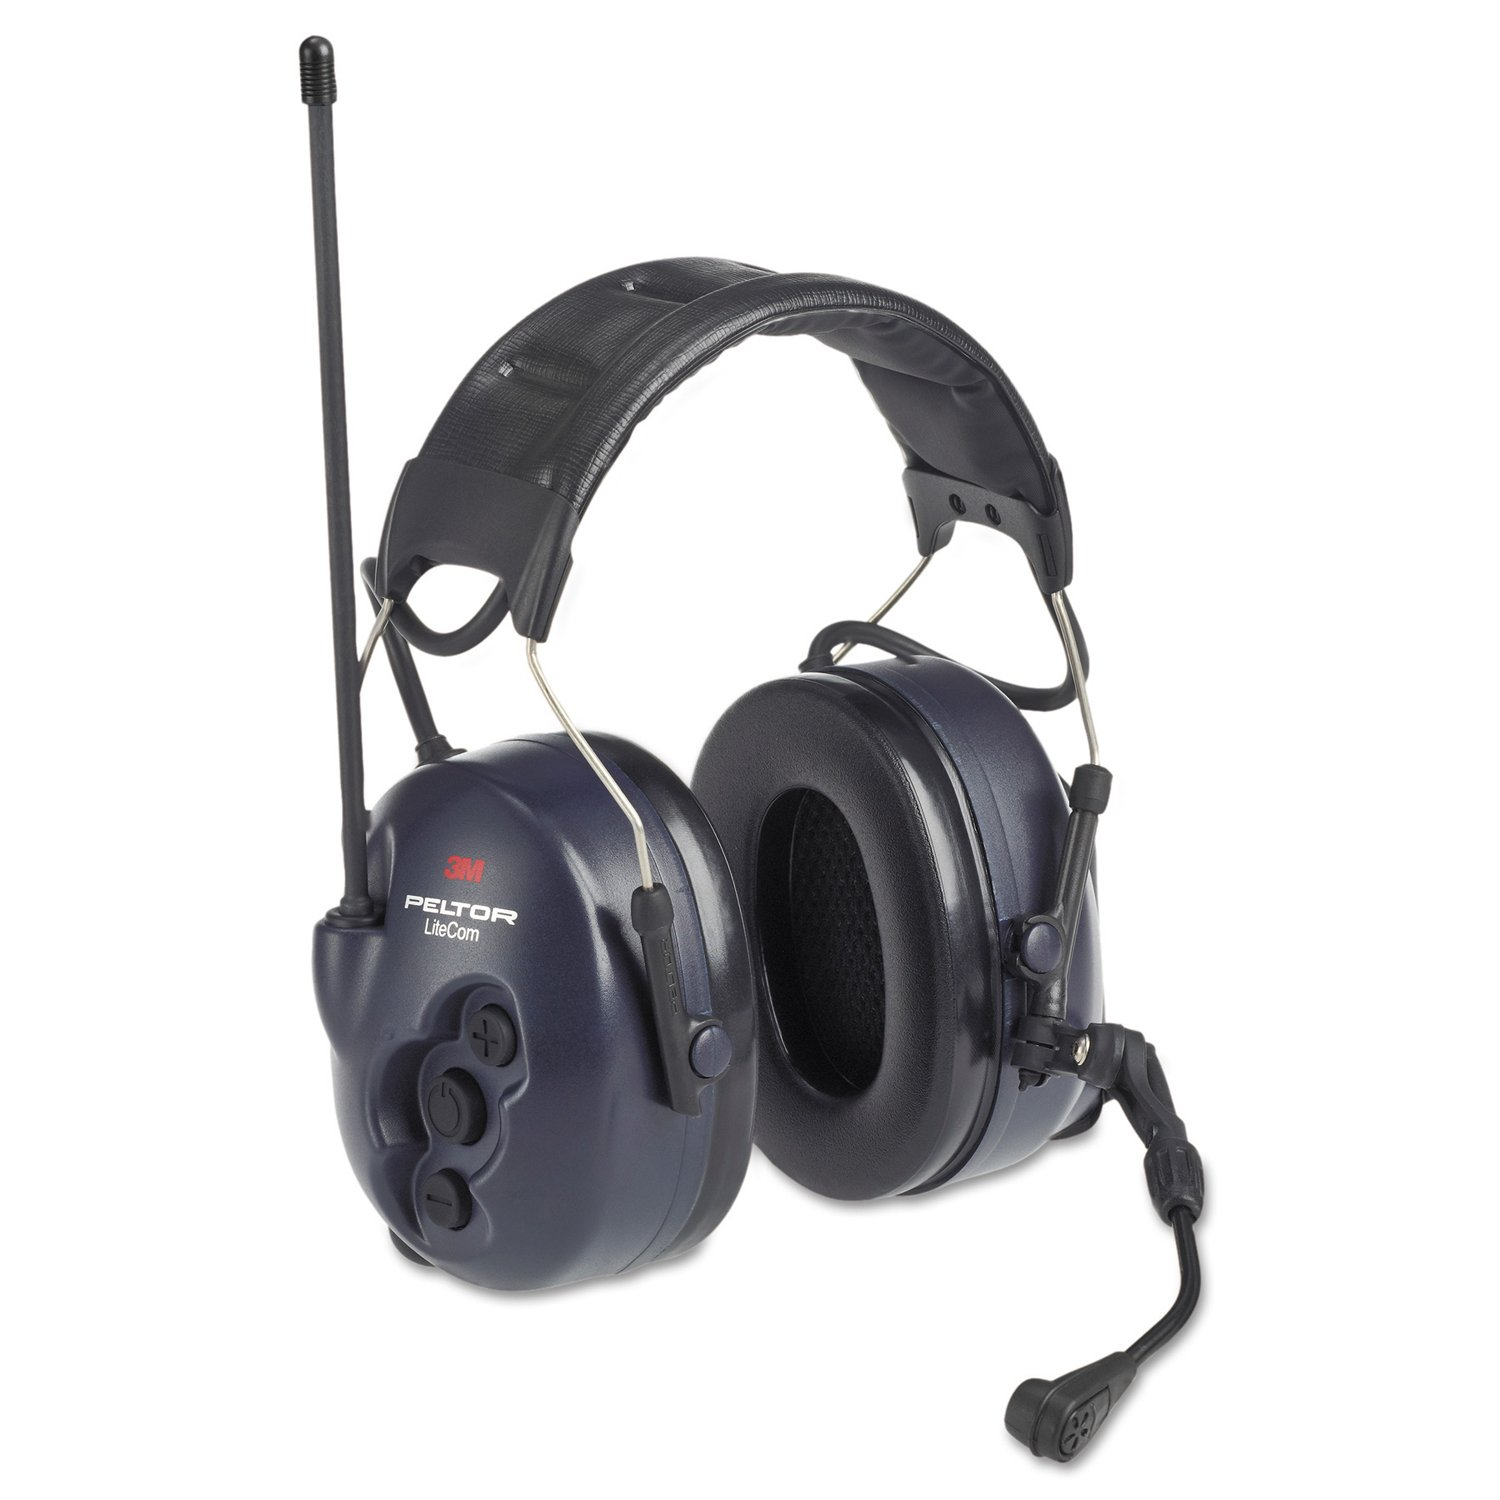 3M Personal Safety Division MT53H7A4600-NA Peltor LiteCom BRS Headsets, 26 DB NRR, Black, Over The Head, 464 - 467 MHz